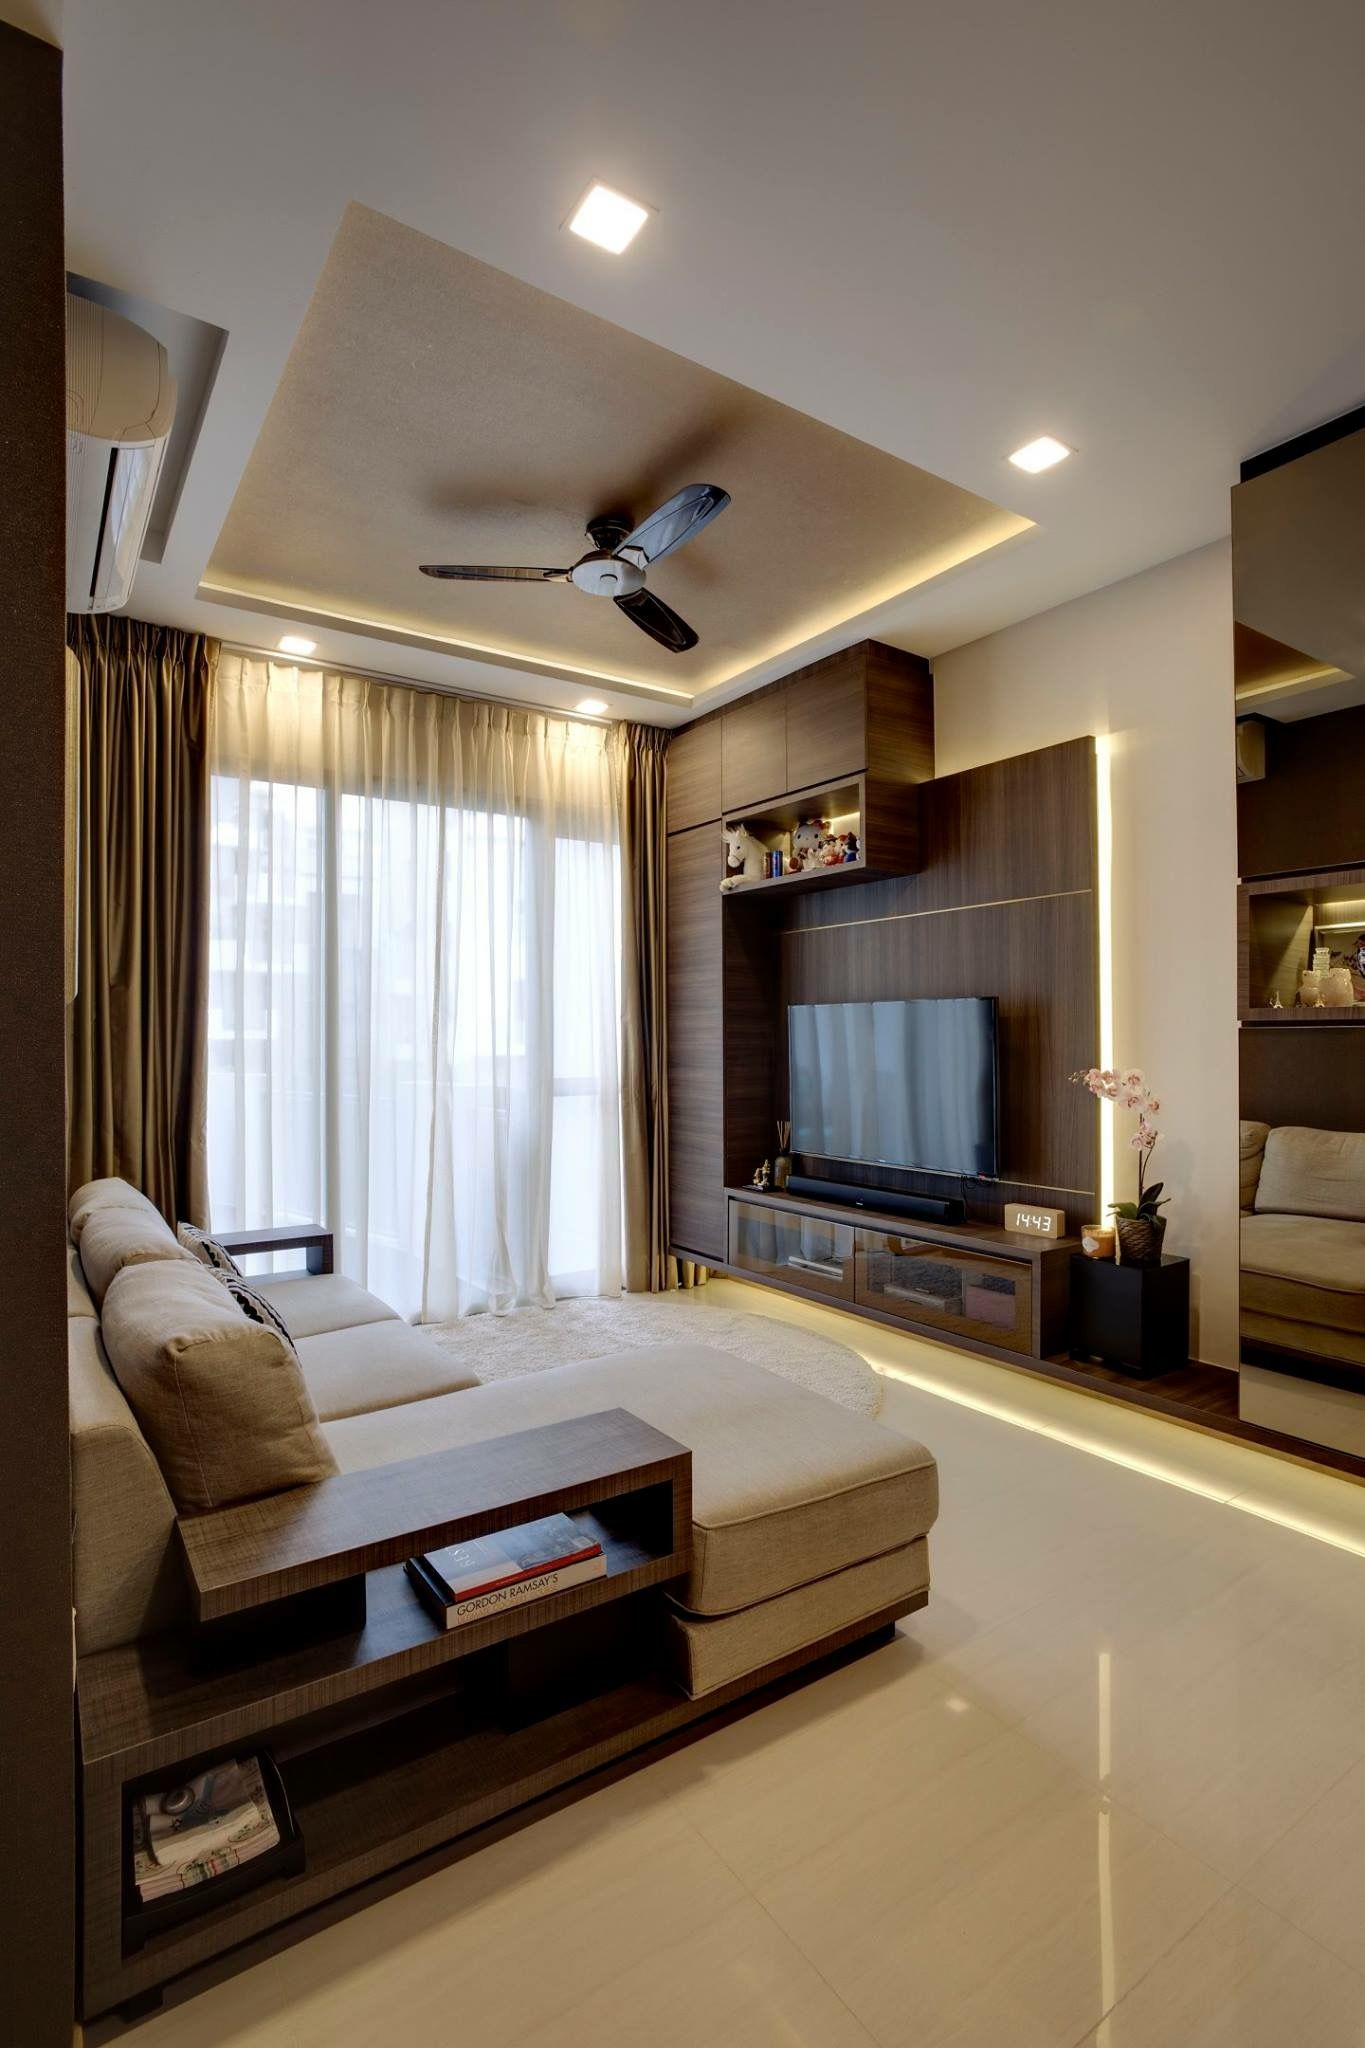 Room Design Interior: Sample For: 1) Lighting + Fan Placement 2) Ceiling Height